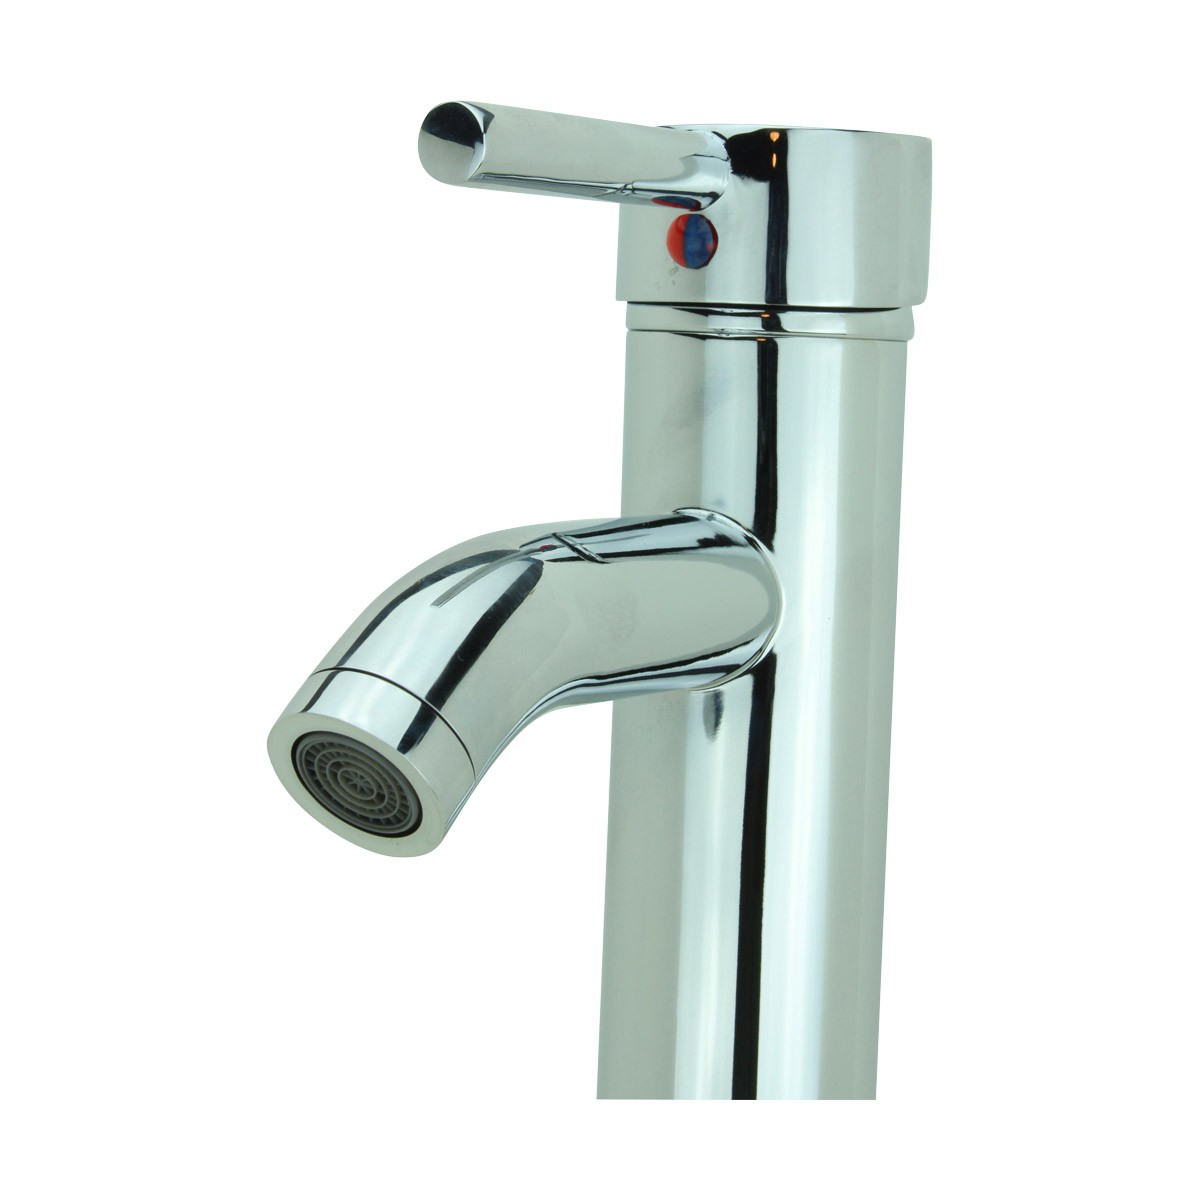 Bathroom Faucet Single Hole Handle Chrome Solid Brass 12 H plumbing modern contemporary chic design antique traditional classic authentic vintage unique fixtures accessories